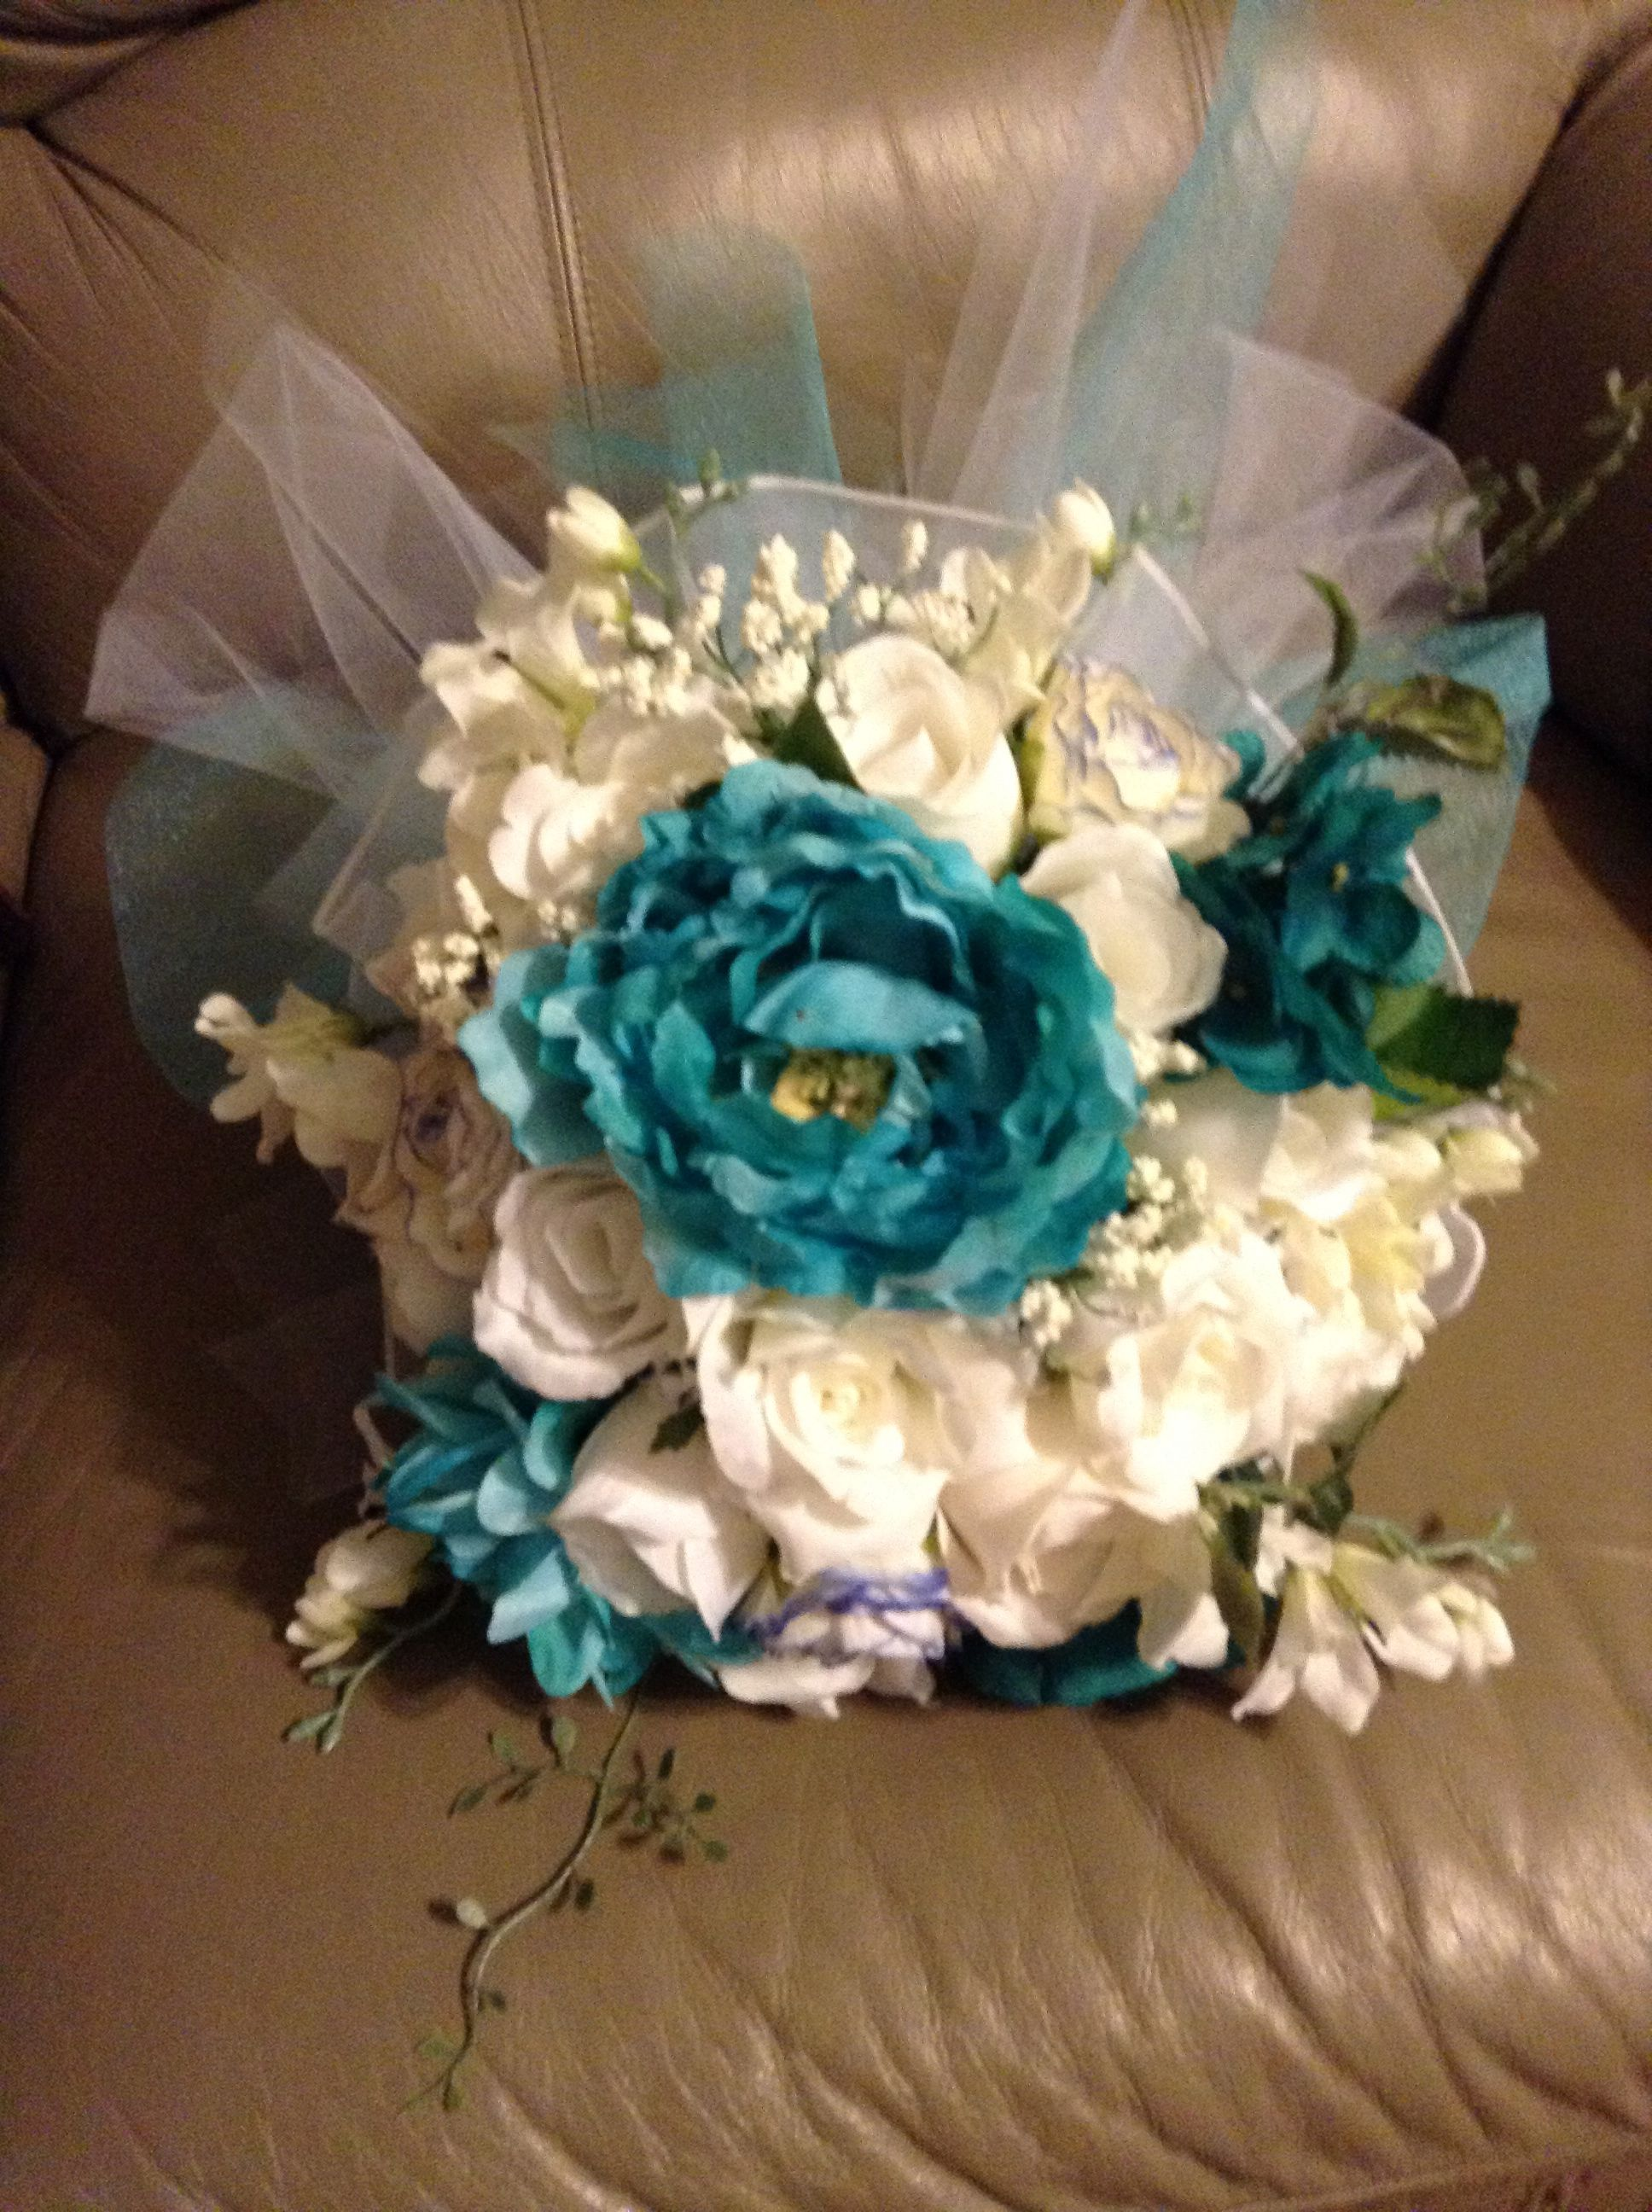 brides bouquet i used a flower form wedding section at hobby lobby to